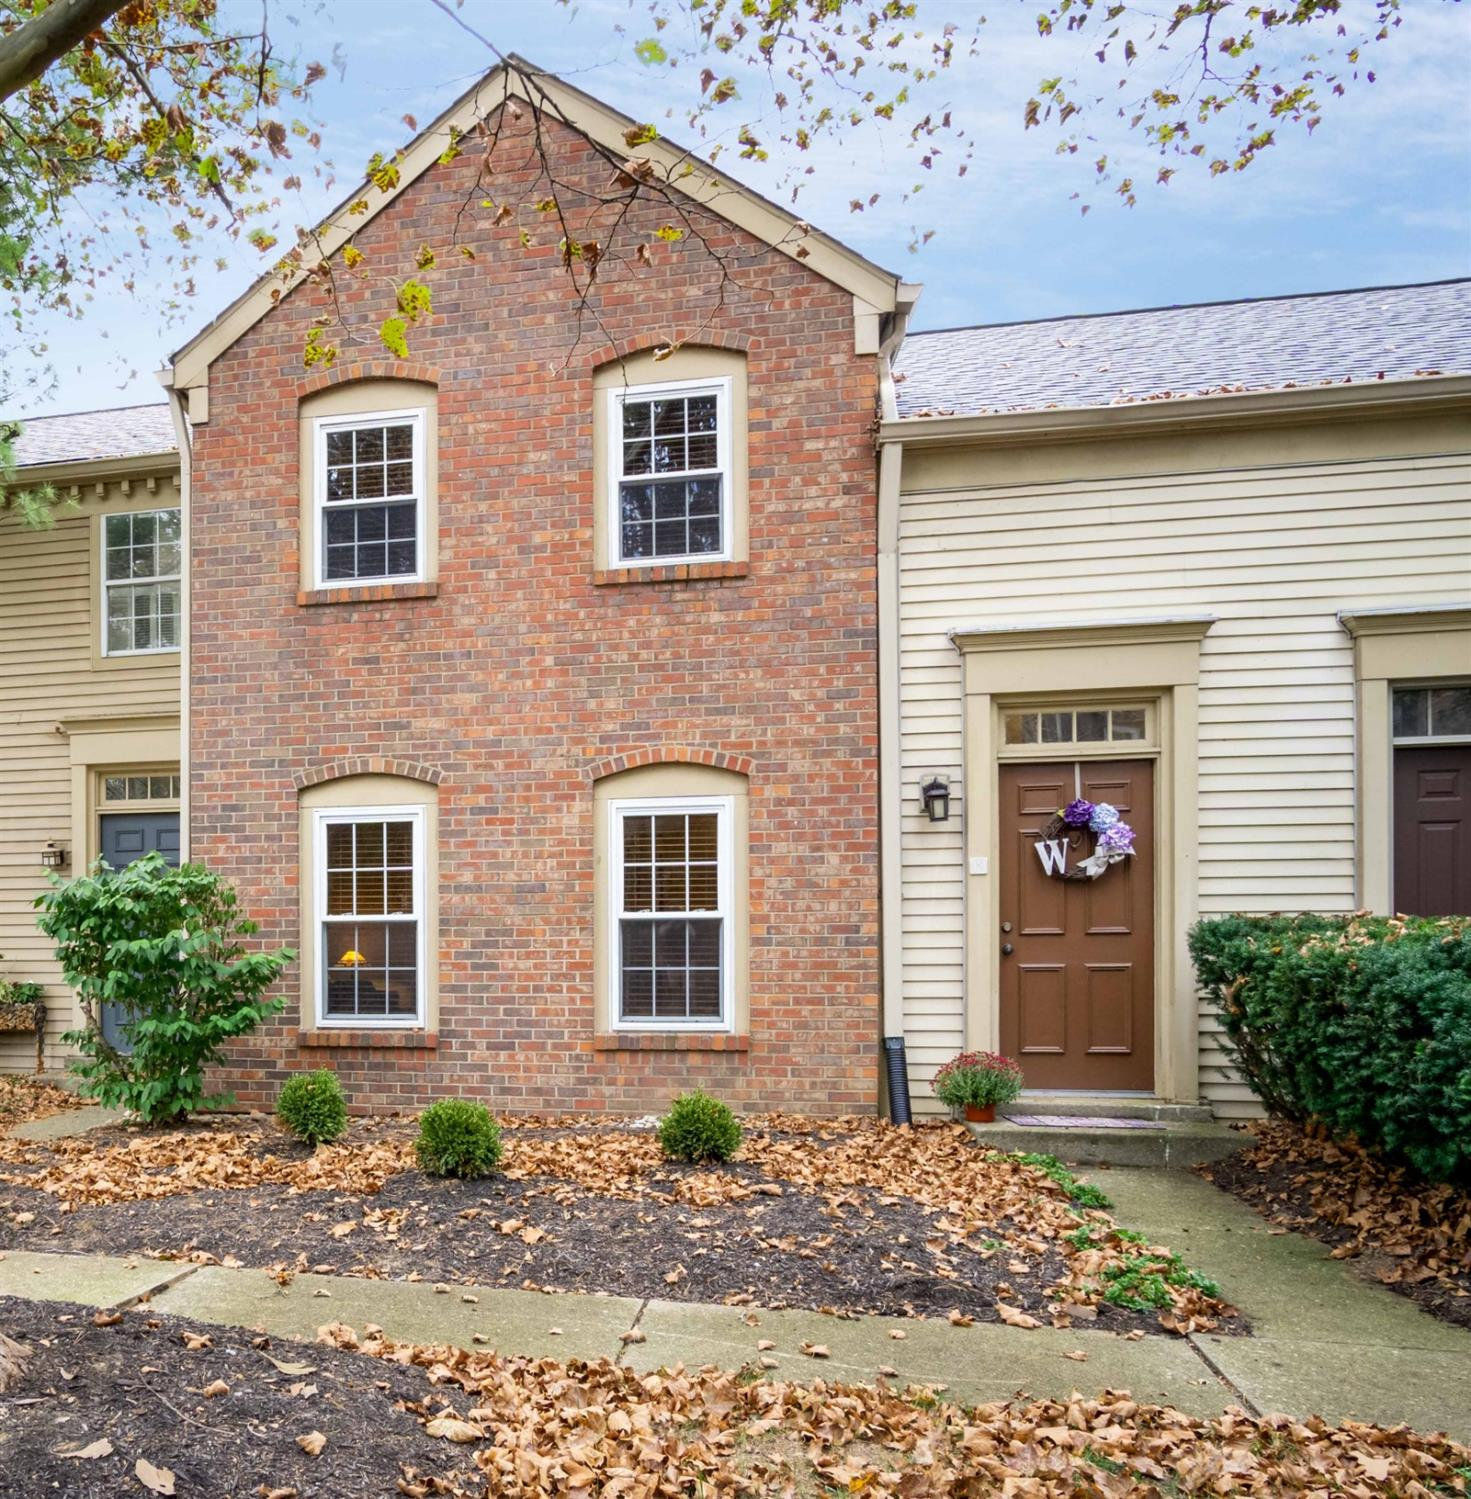 Property for sale at 8 Woodsview Lane, Sharonville,  Ohio 45241